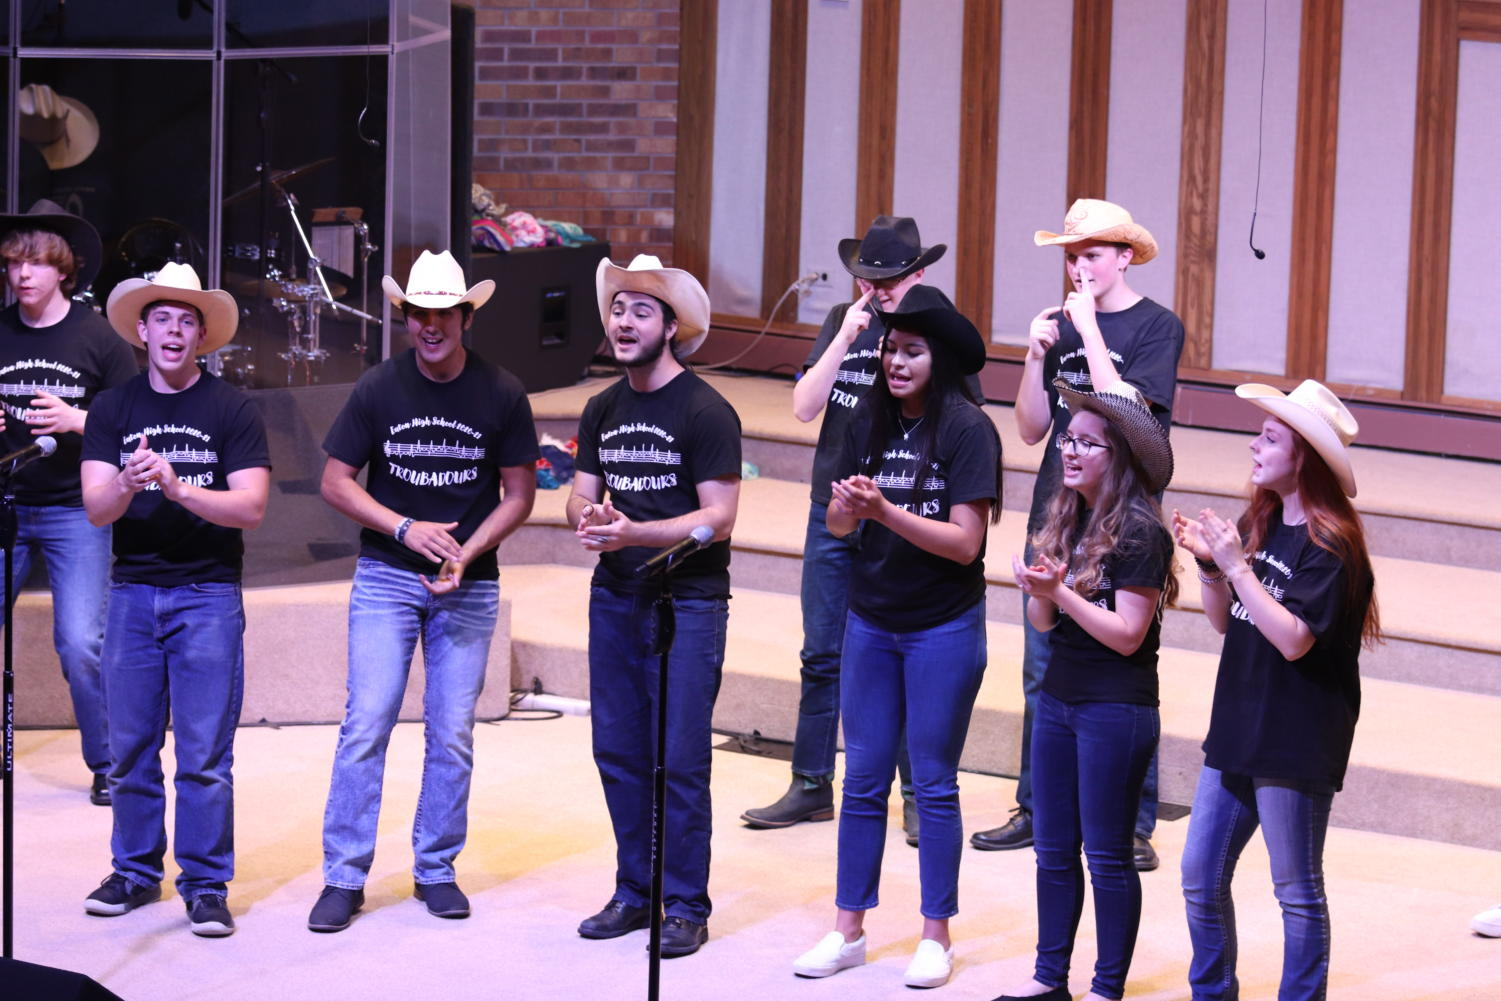 Choir concert had the audience shaking in their boots